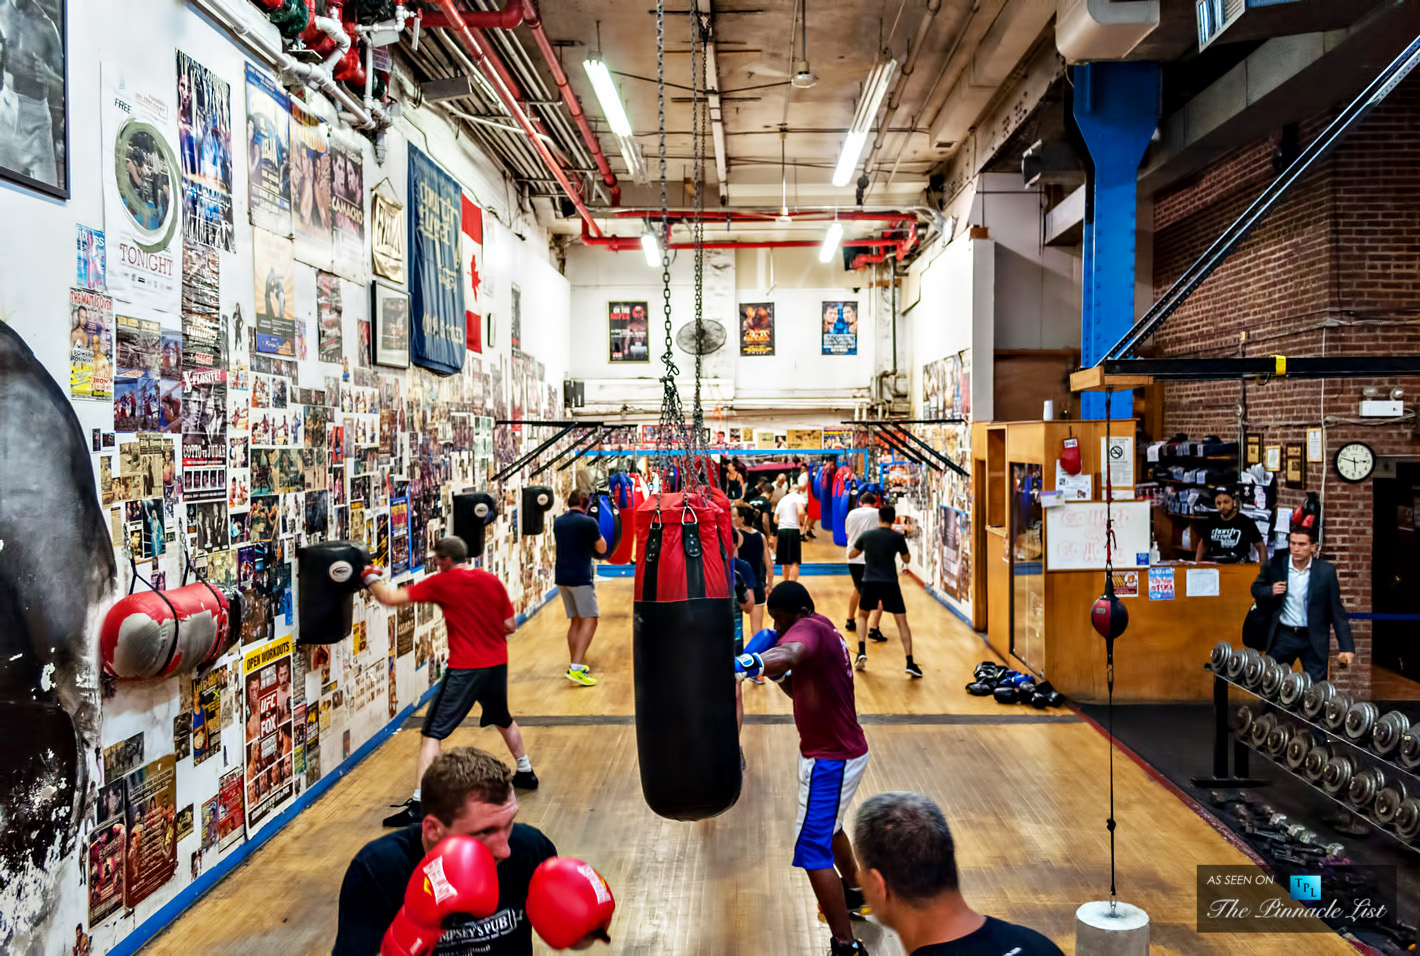 Church Street Boxing - 25 Park Place, New York